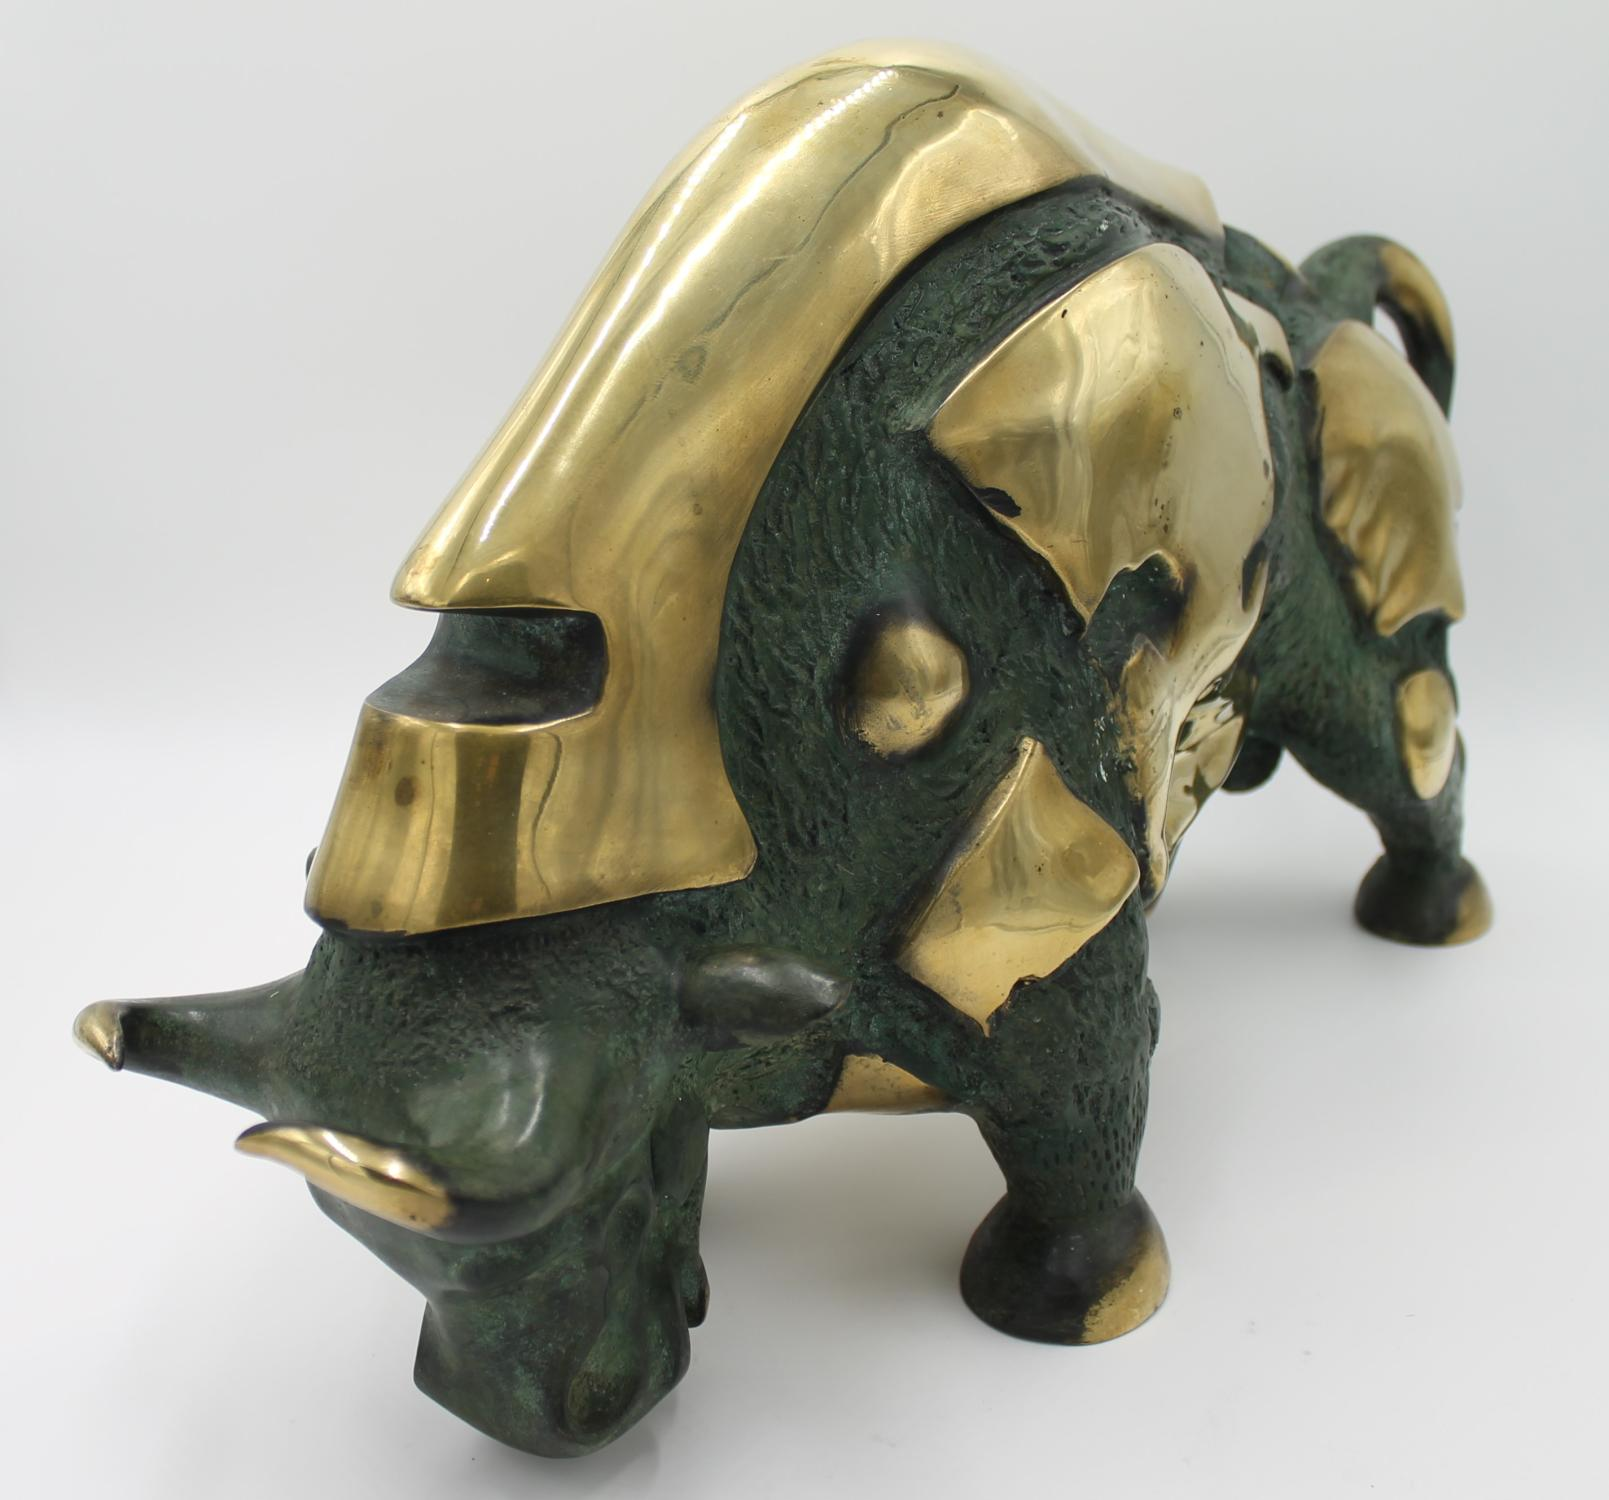 Lot 3 - Sculpture: A gilt and patinated bronze model of a Bull, 2nd half 20th century, with stylised